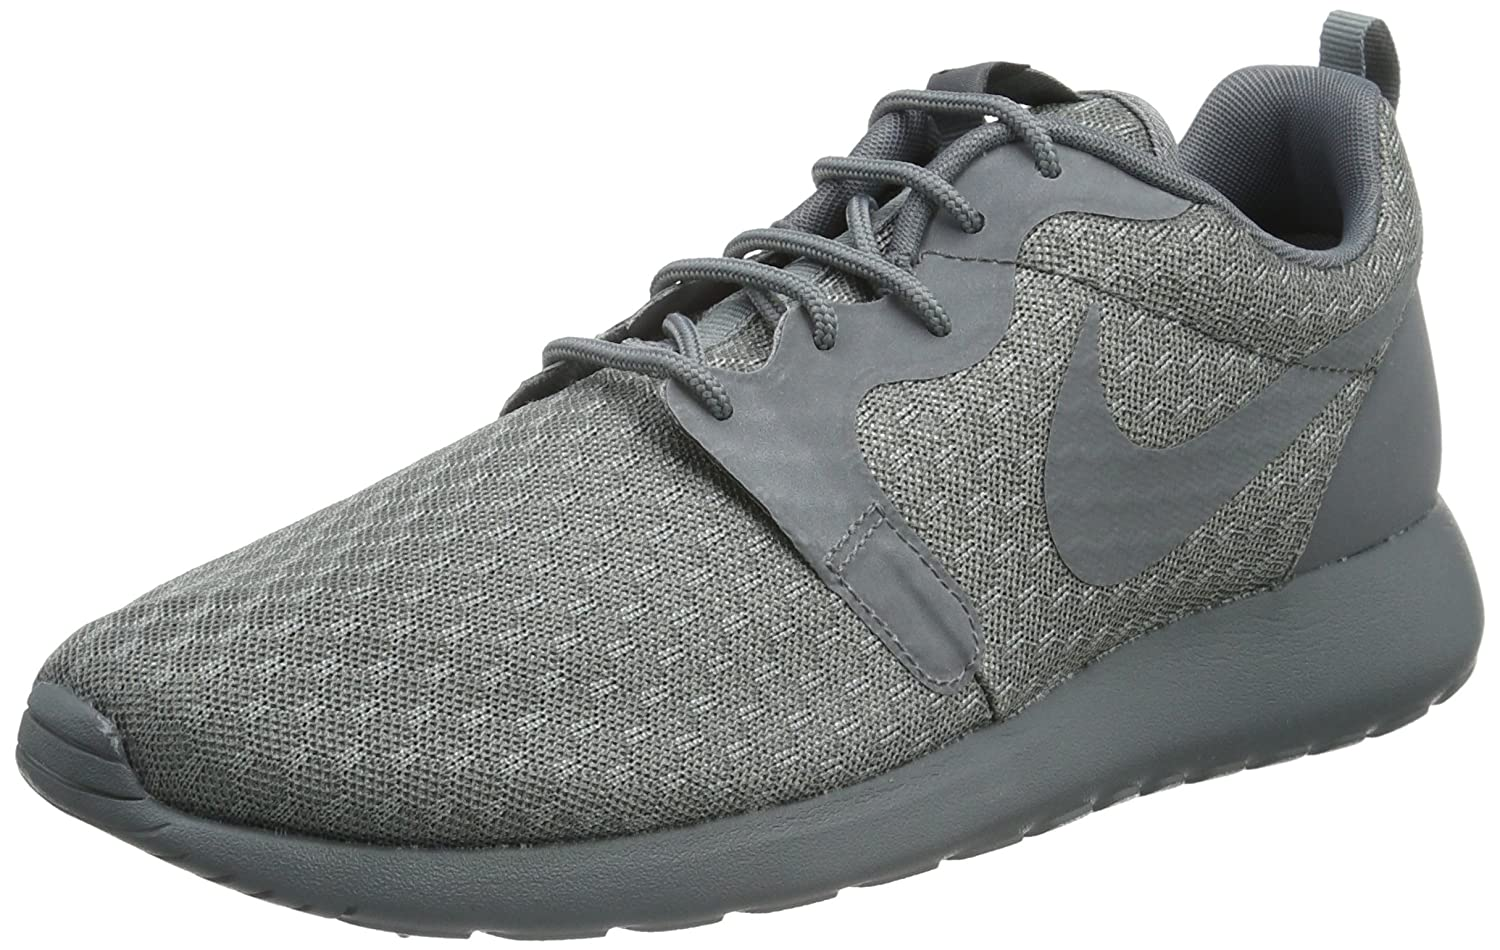 on sale 4f0e3 33c39 Amazon.com   Nike Men s Roshe One Hyp Running Shoe (12 D(M) US, Cool  Grey Cool Grey Black)   Running